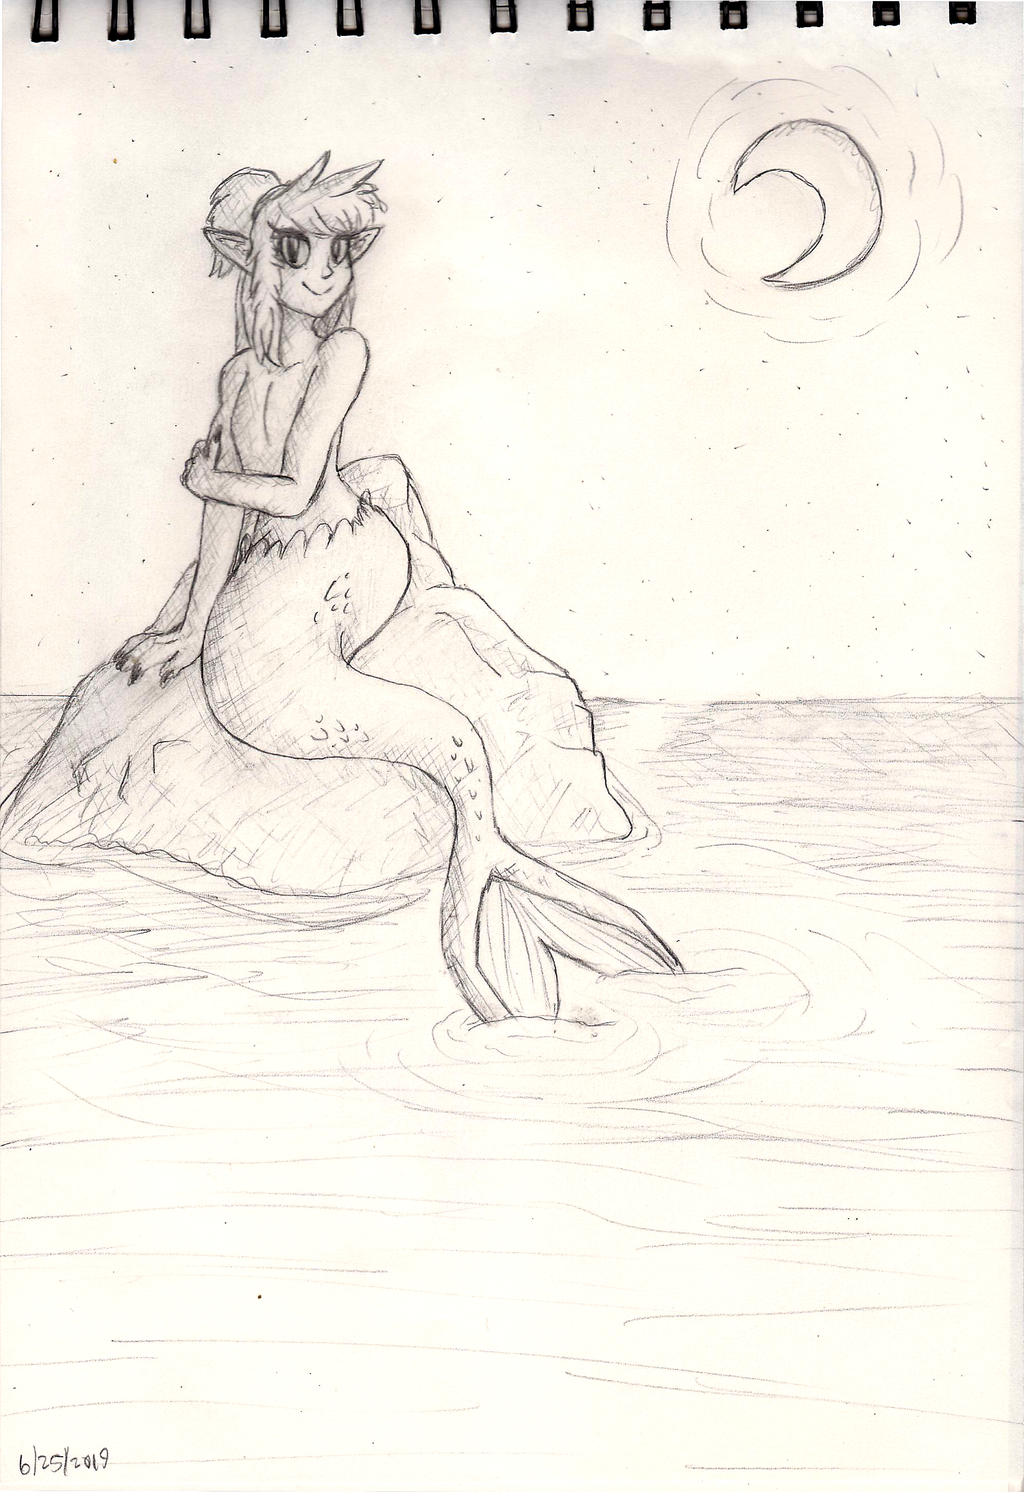 Mermaid relaxing